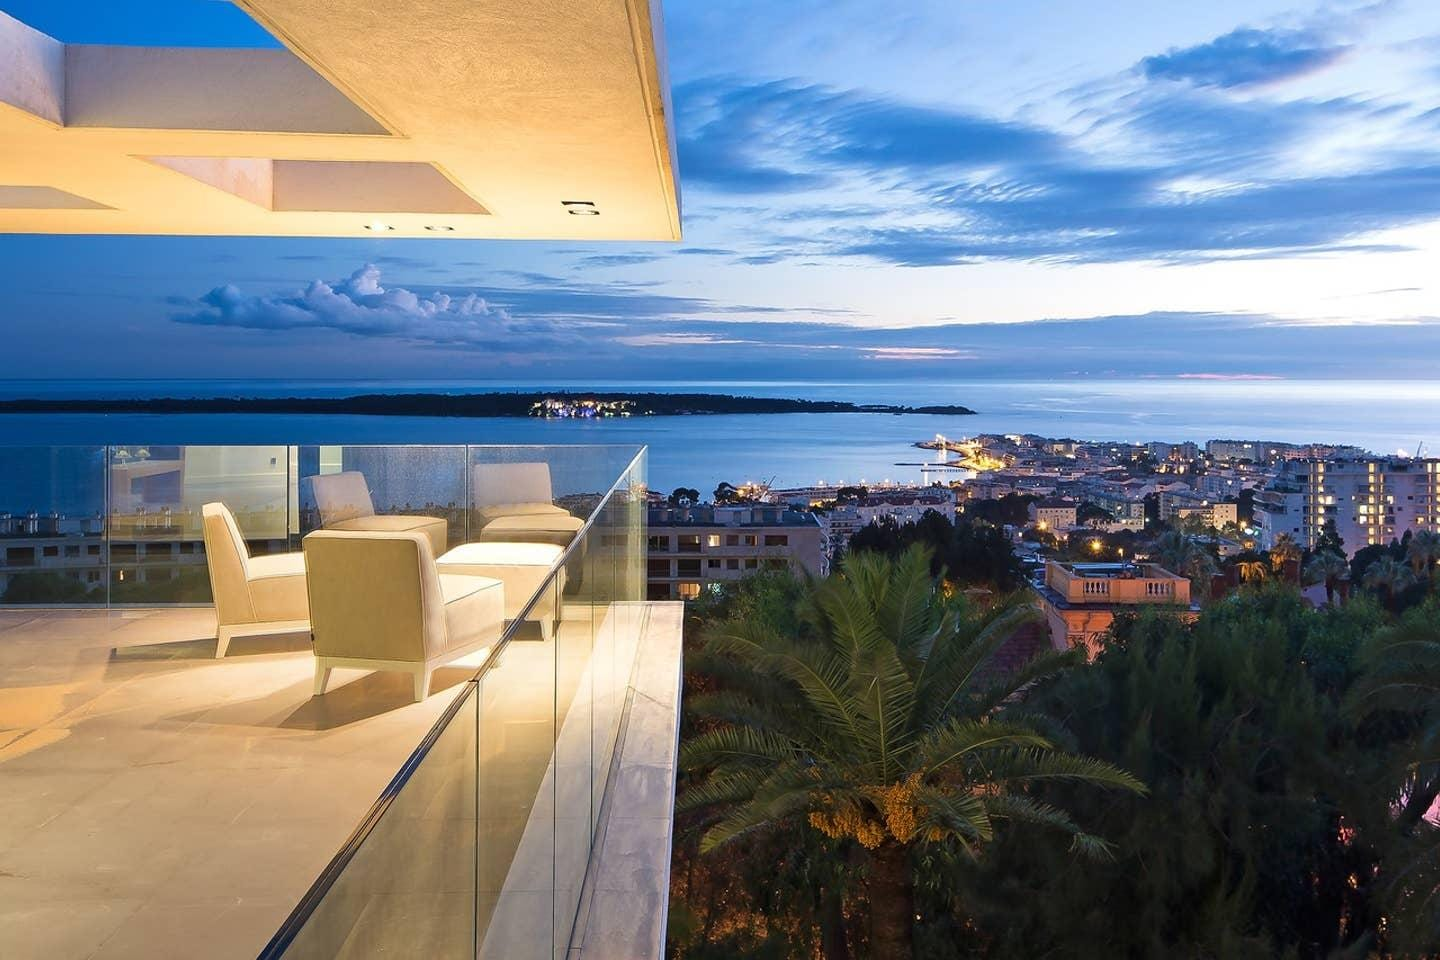 The Most Spectacular Villa in French Riviera